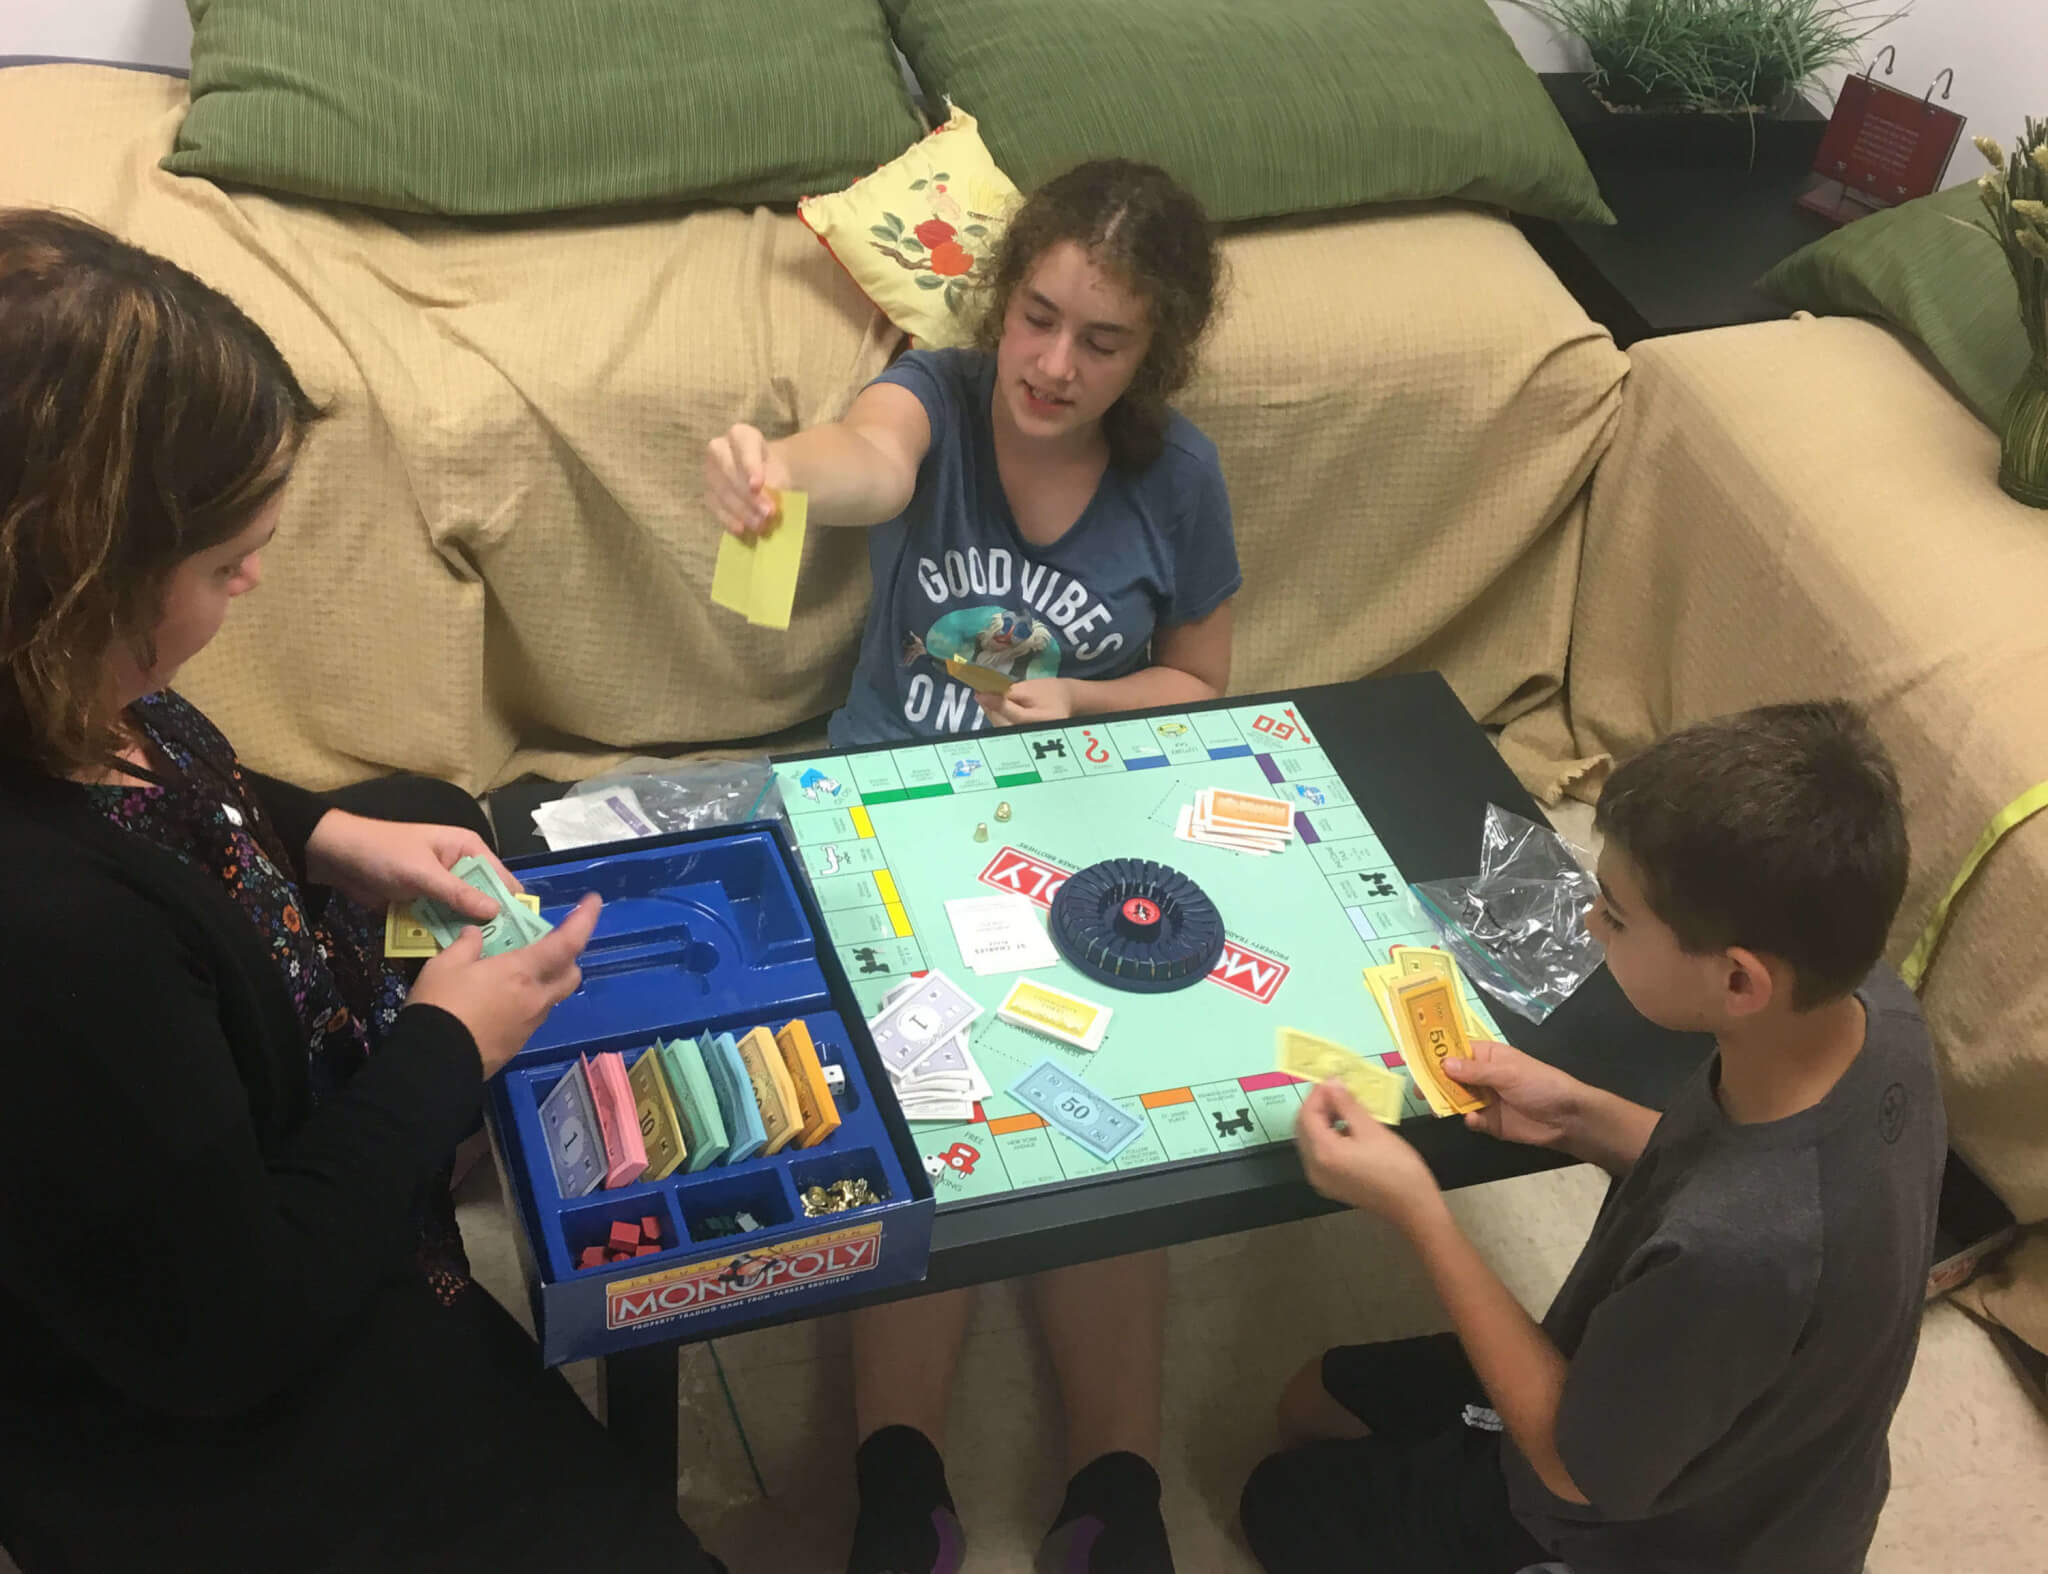 Friends playing games